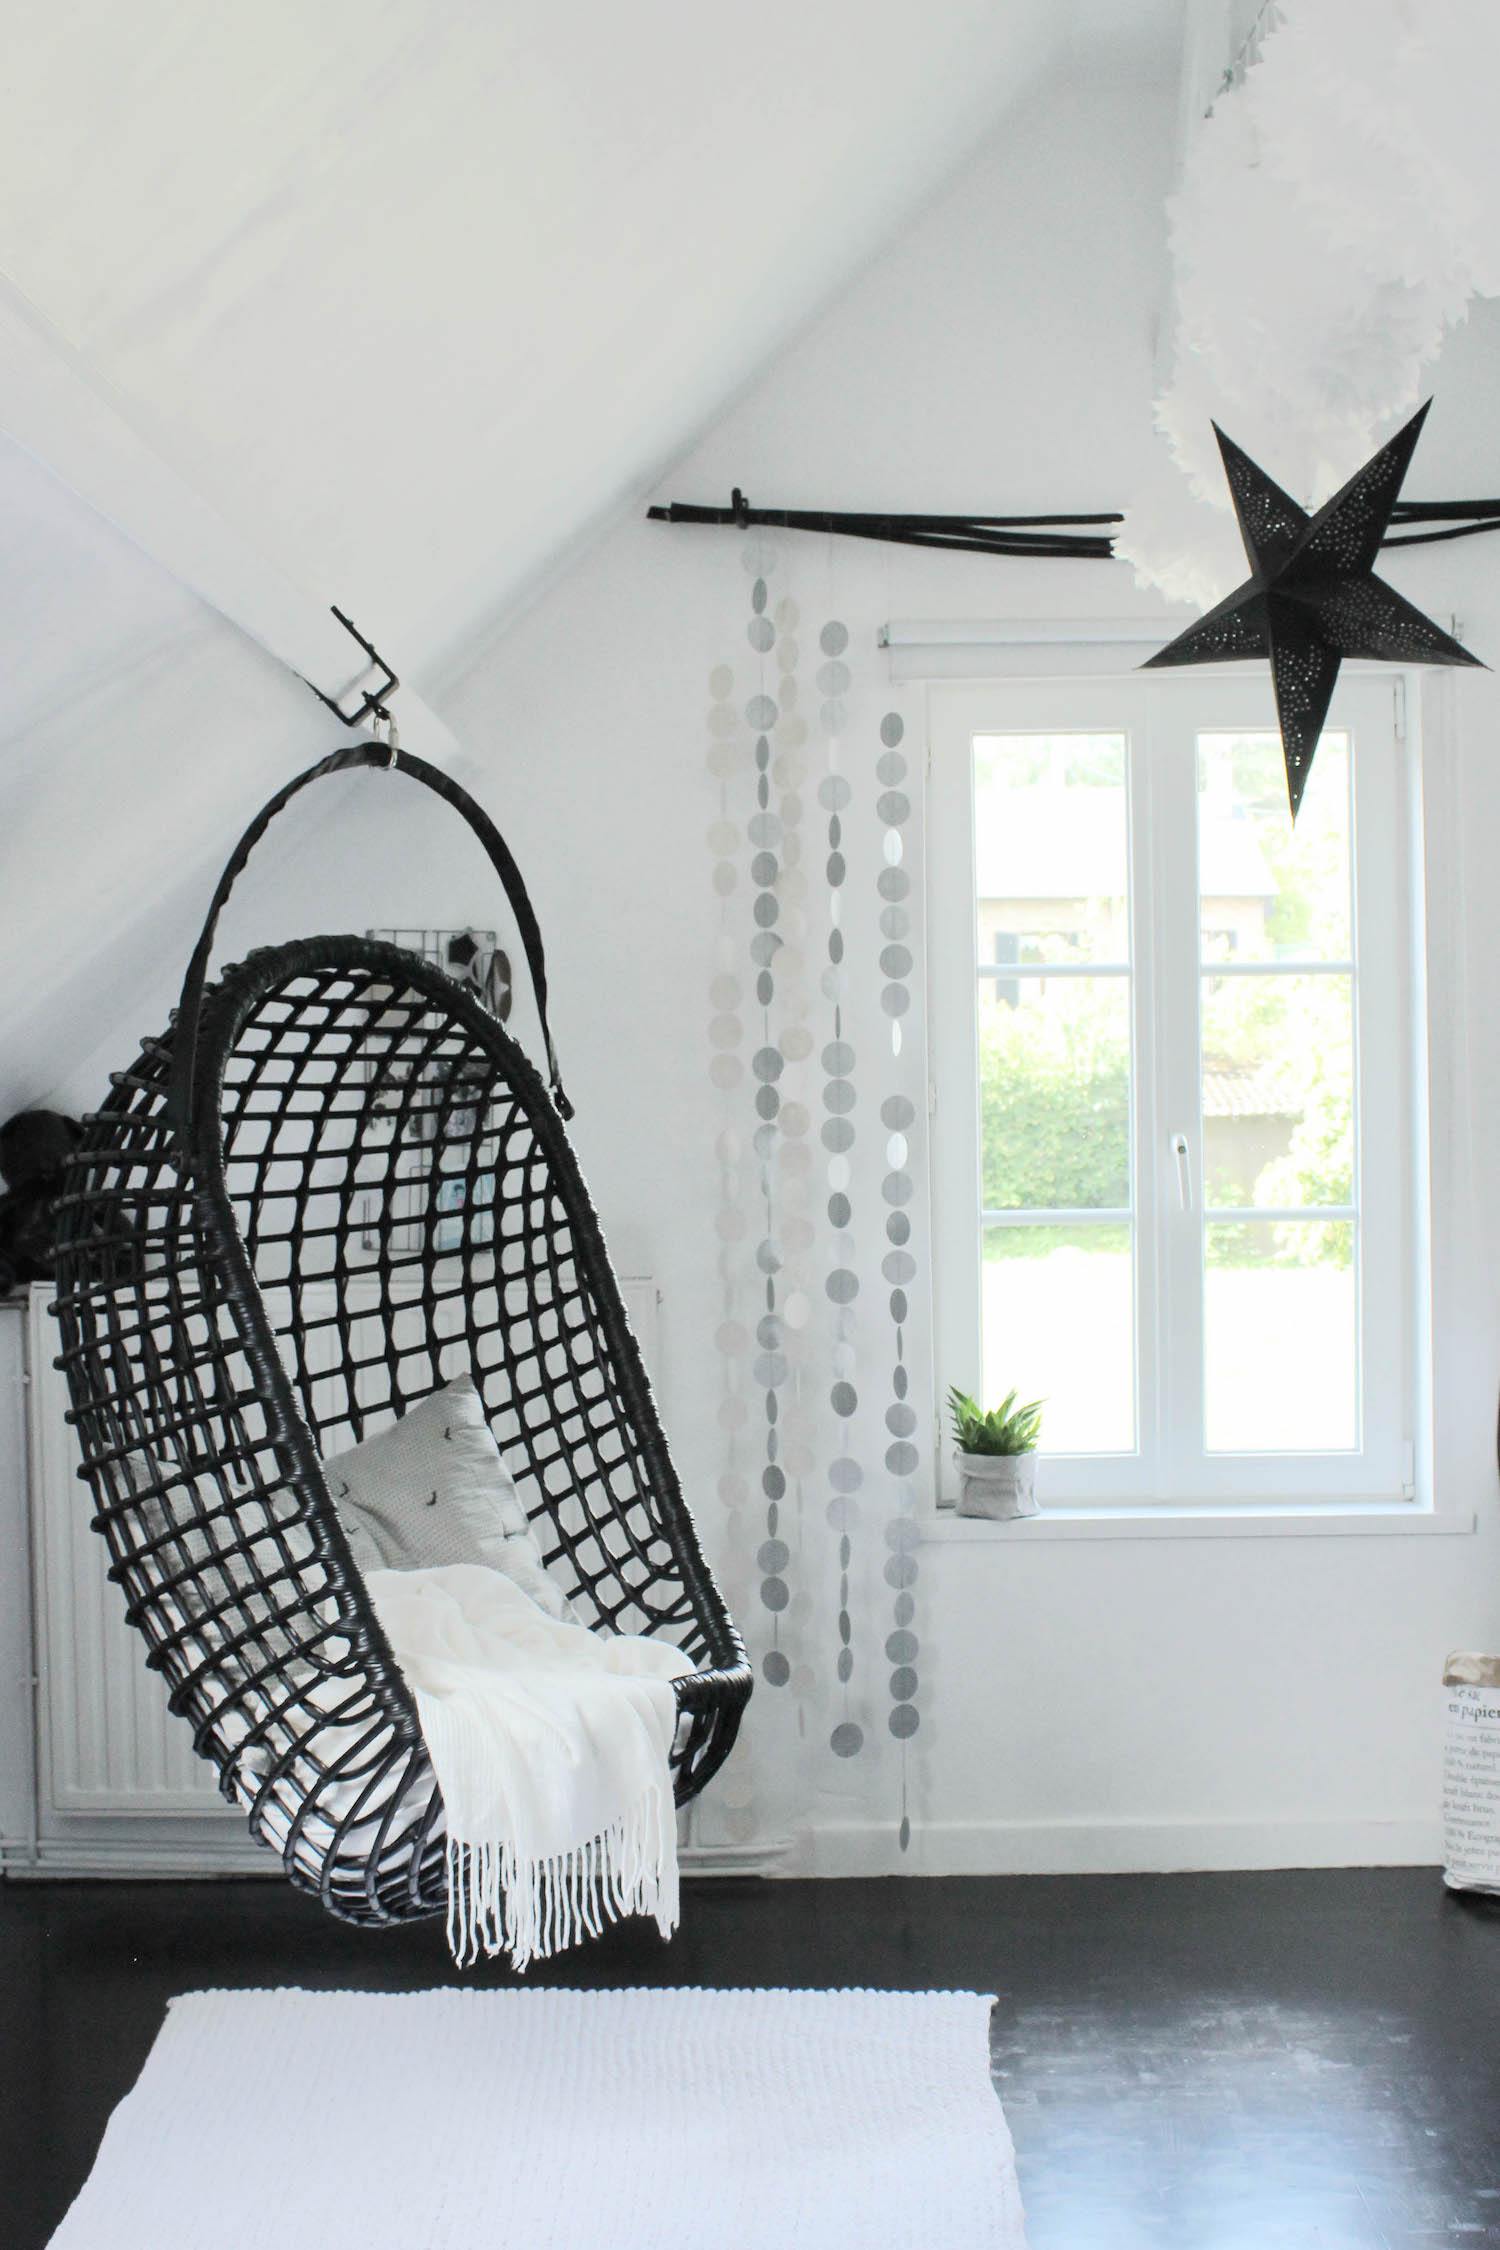 la chambre d 39 ado tendance et moderne en noir et blanc de philippine. Black Bedroom Furniture Sets. Home Design Ideas